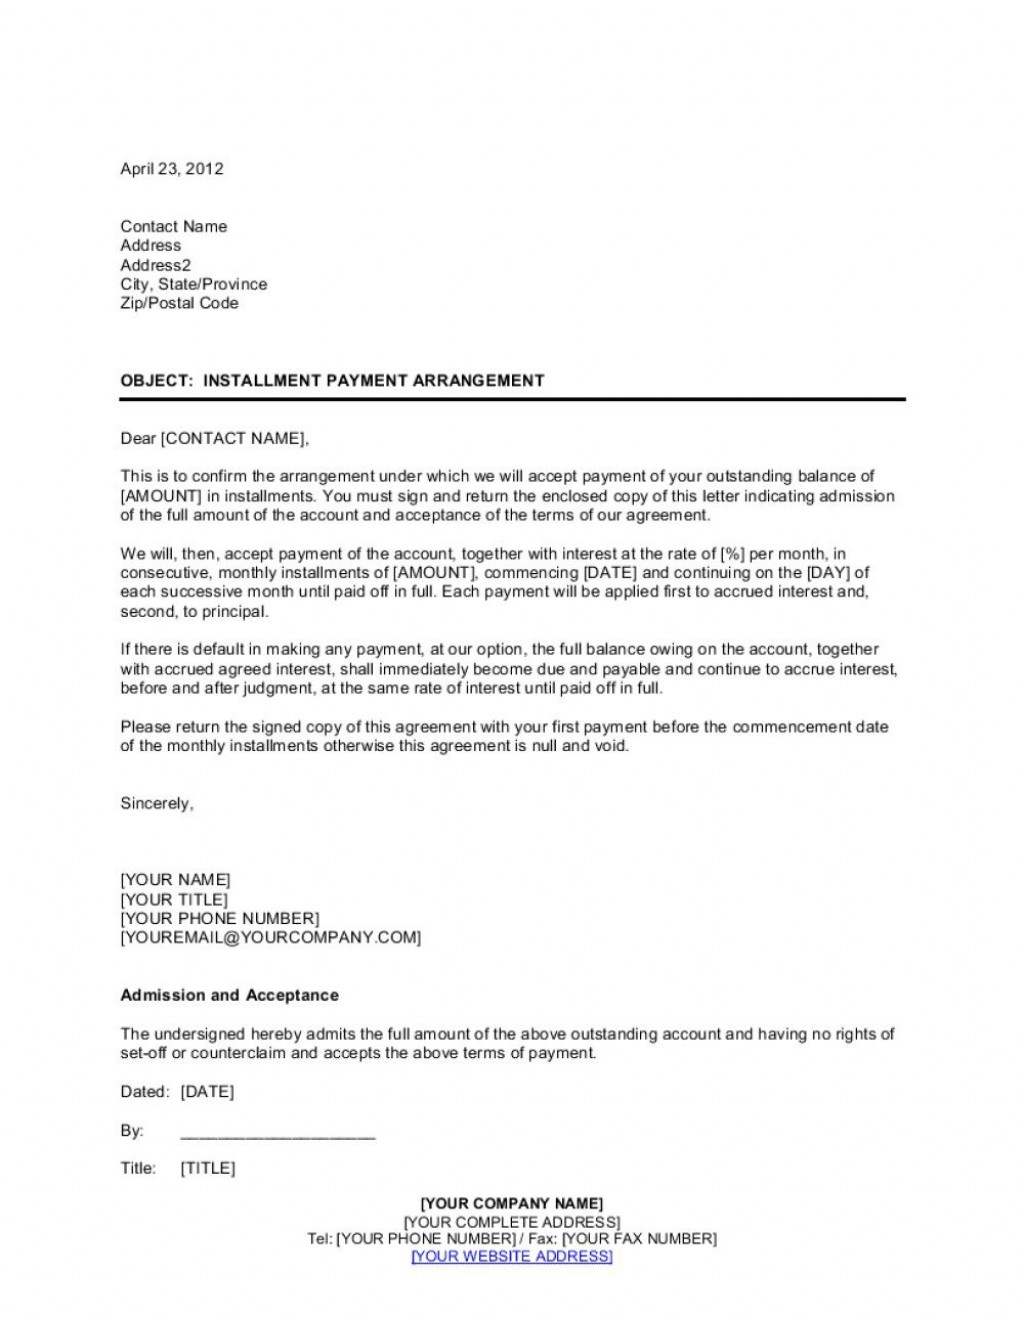 002 Simple Installment Payment Contract Template High Resolution  Agreement Free Car WordLarge